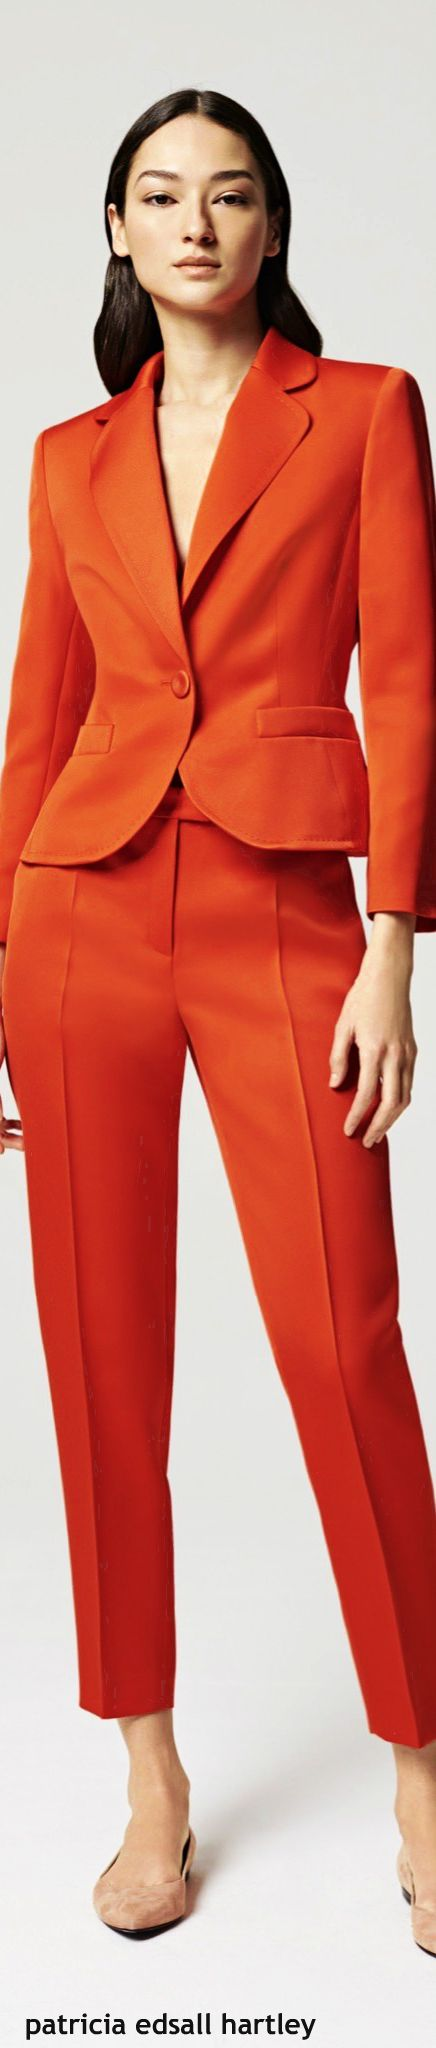 Orange clothing for women